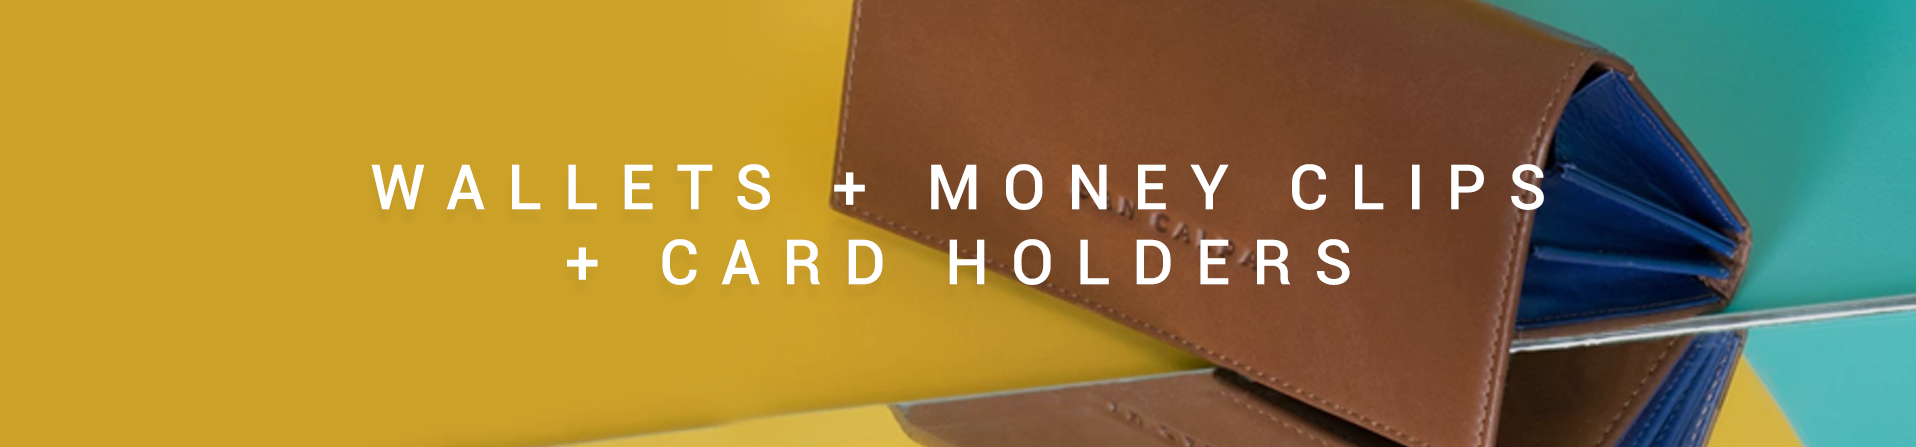 - Women - Wallets + Money Clips + Card Holders -